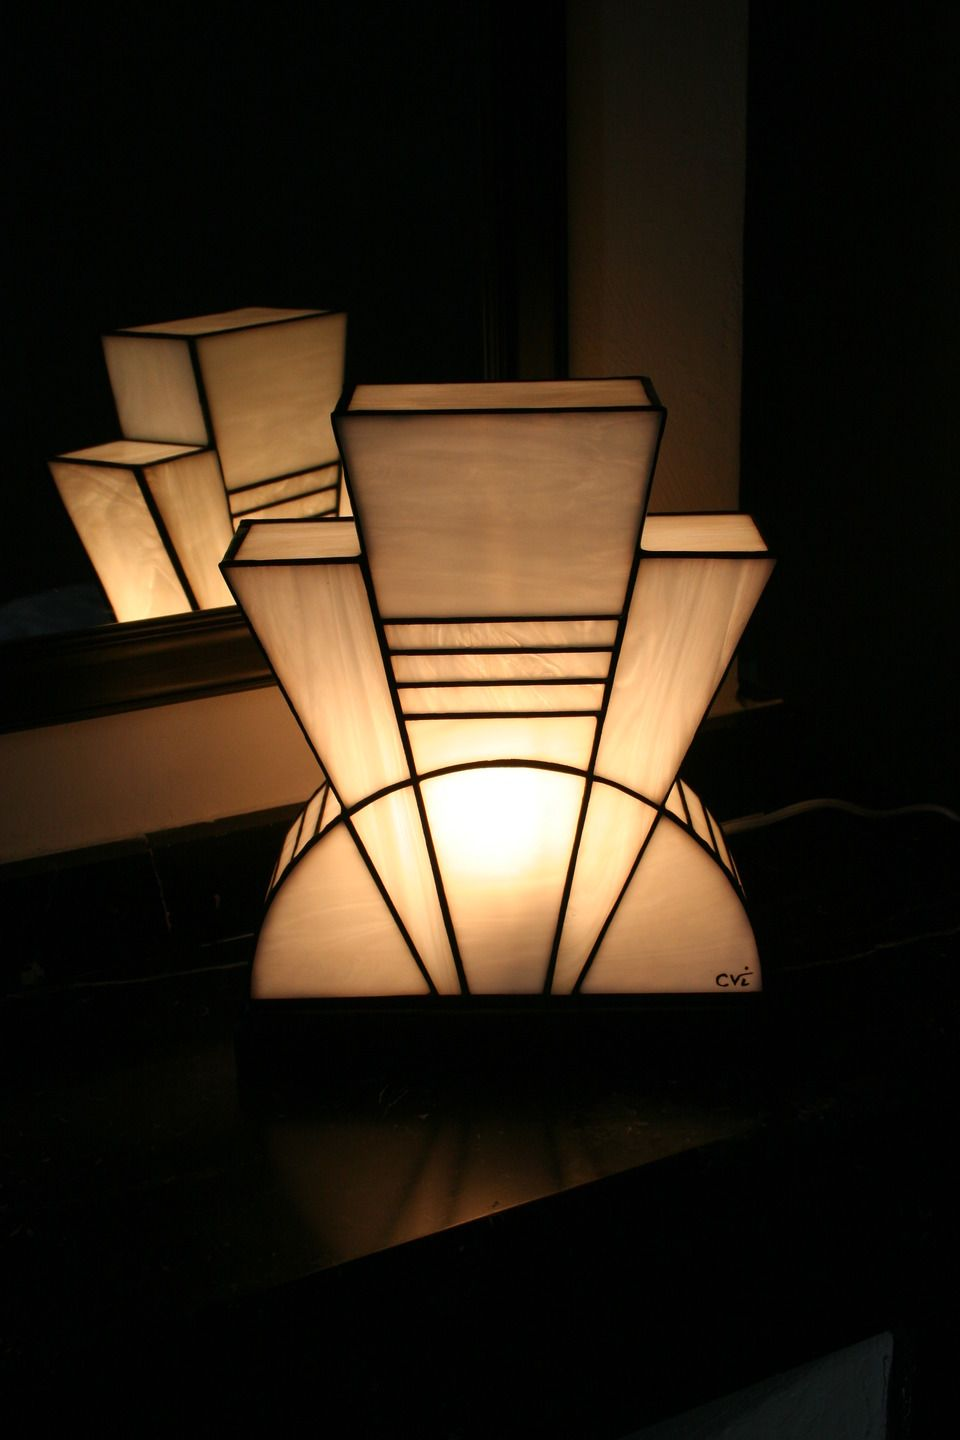 Lampe Tiffany Lampe Art Deco Tiffany Vitrail Tiffany Lampe A